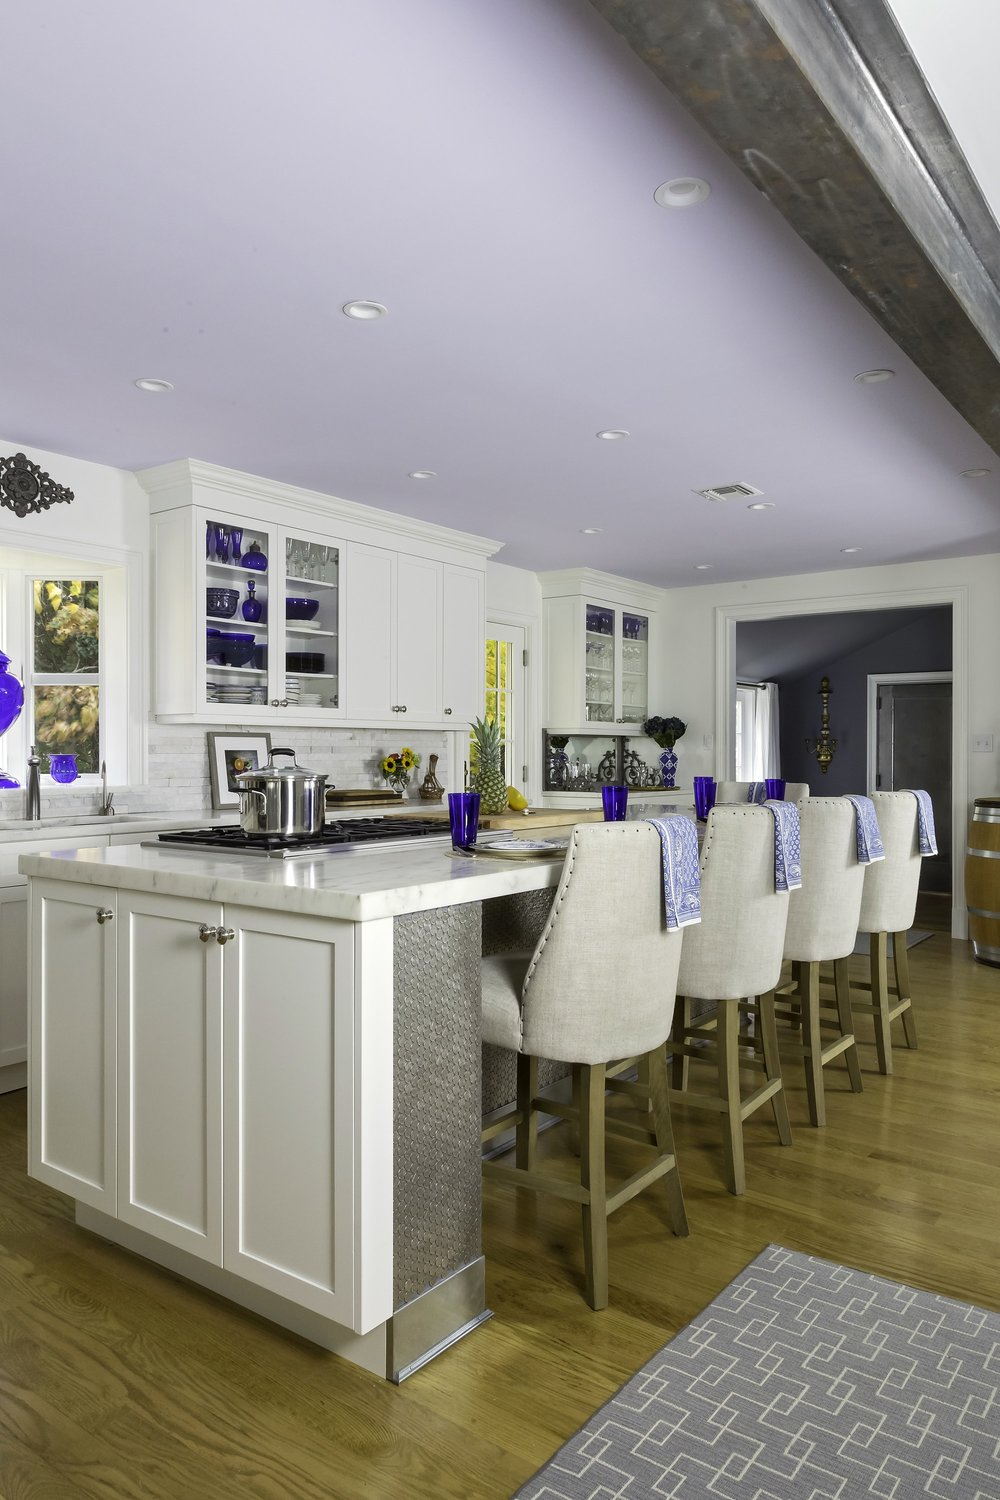 Transitional style kitchen with long kitchen counter